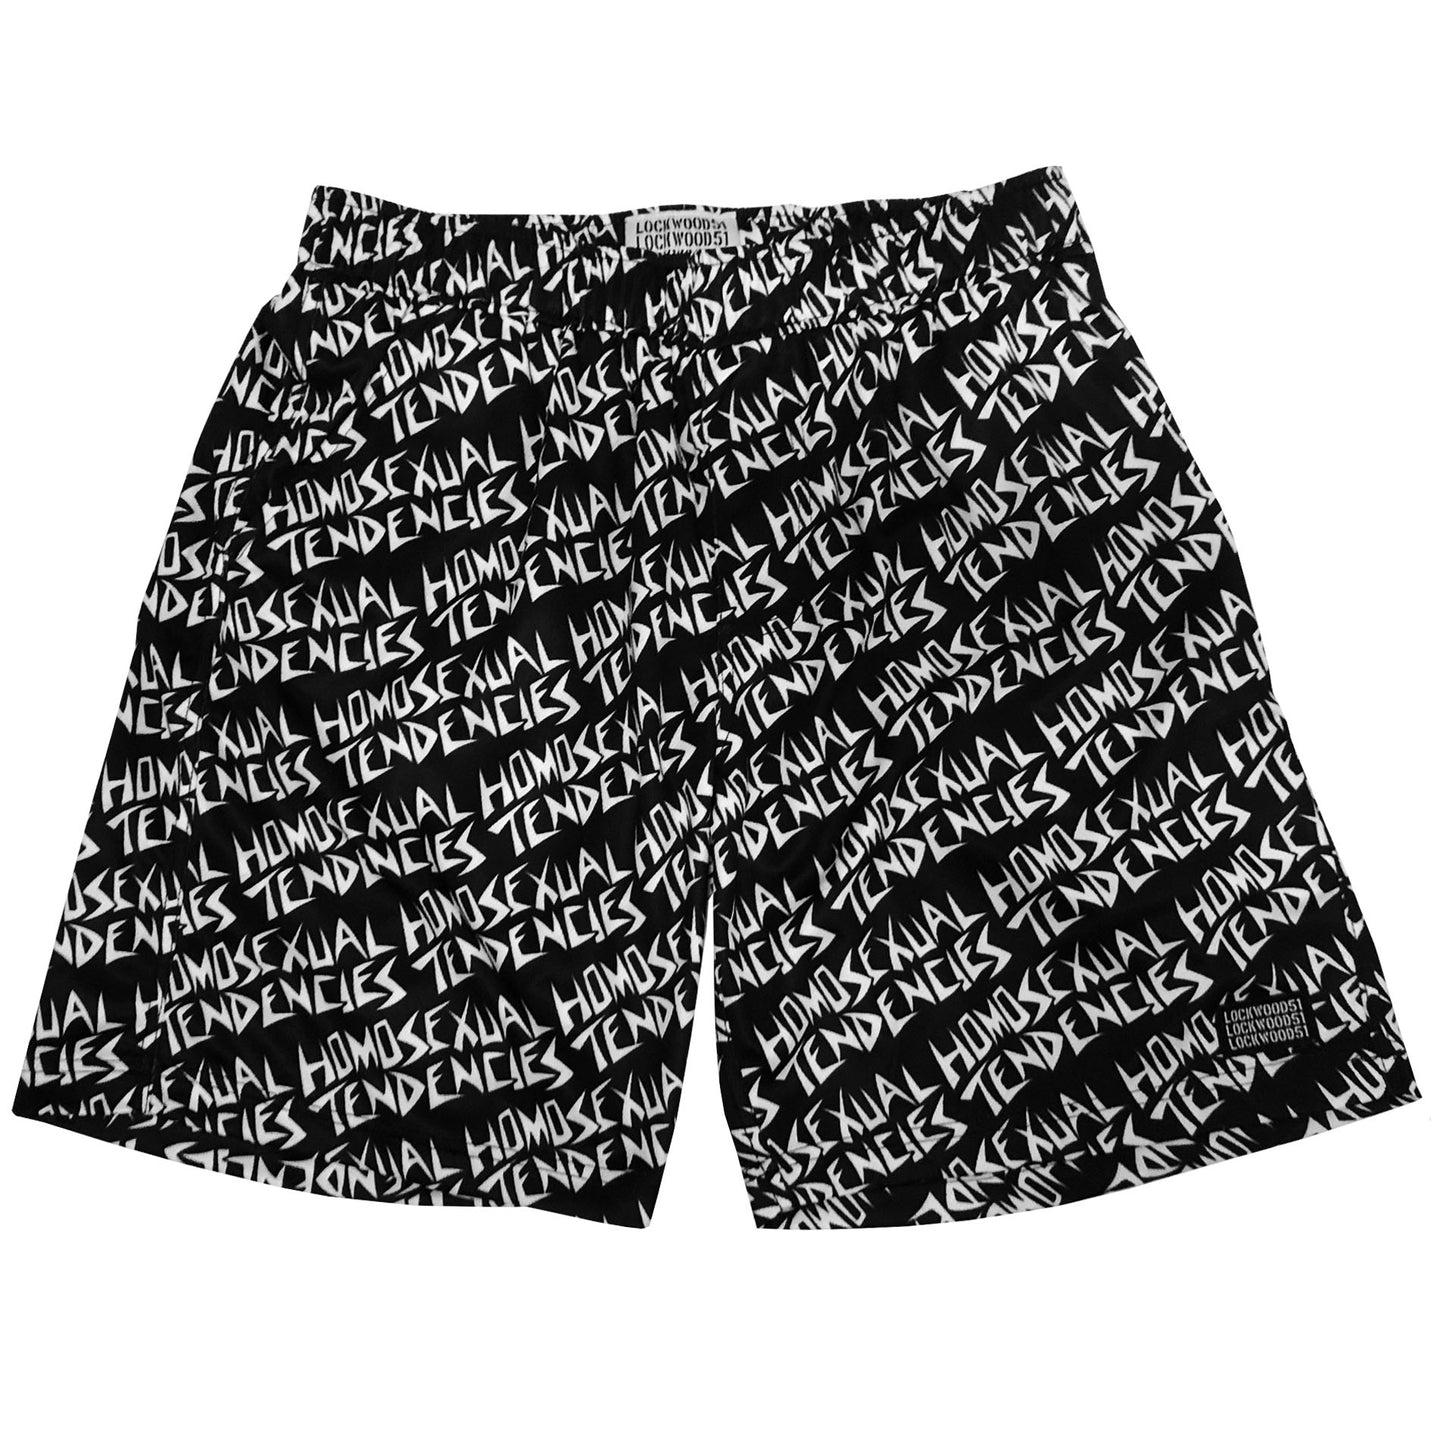 Homosexual Tendencies Core Short